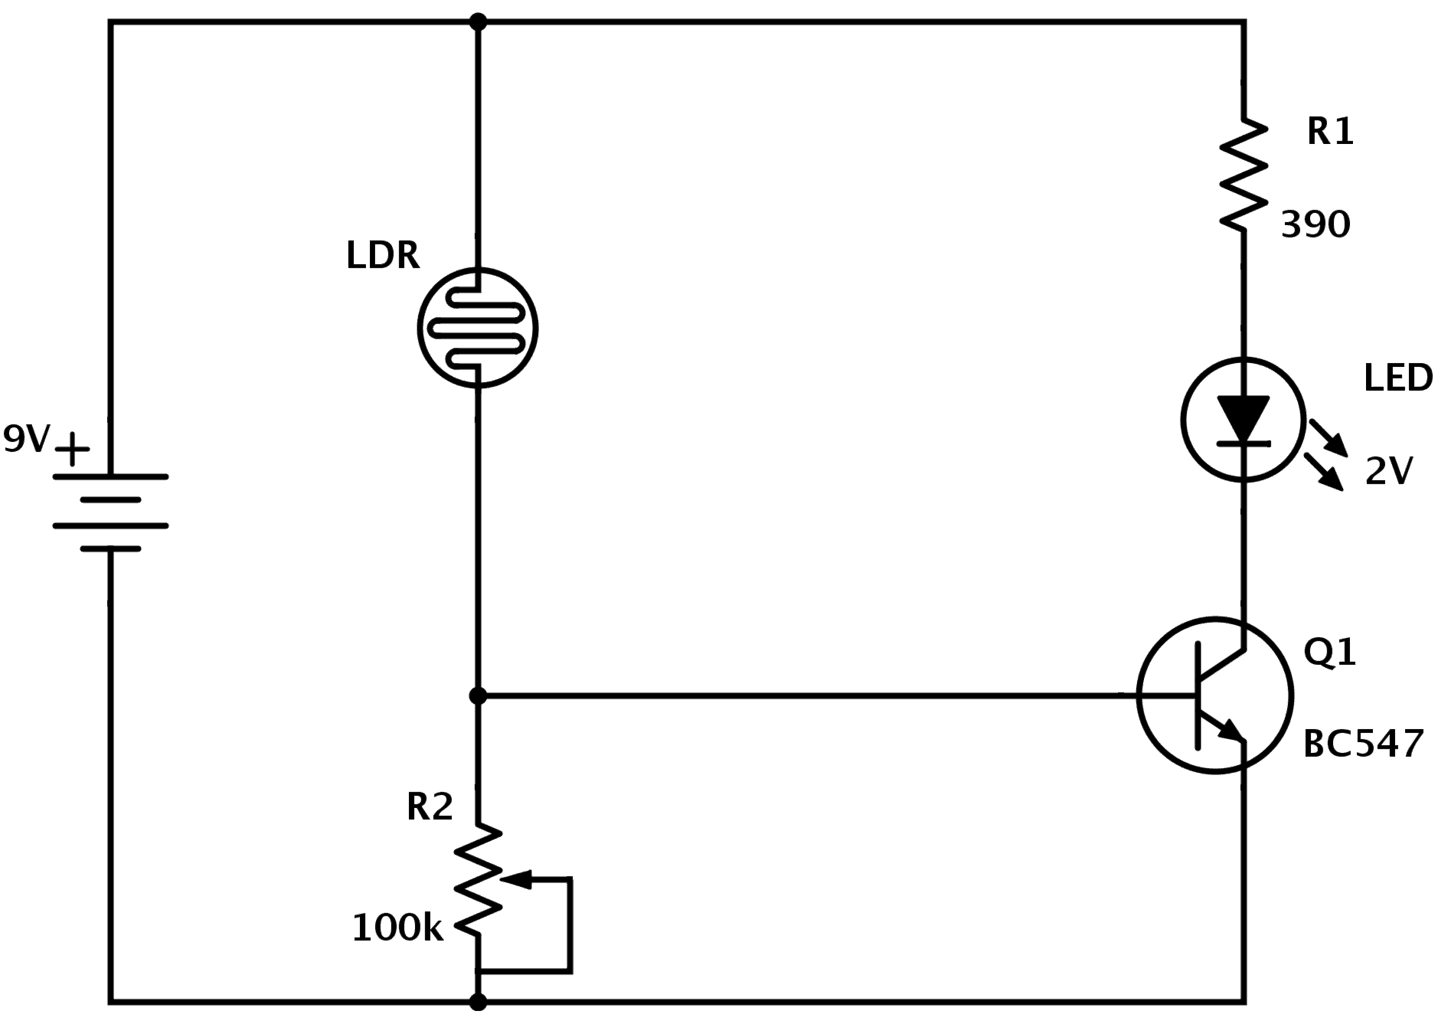 Circuit Diagram How To Read And Understand Any Schematic Circuit Breaker Diagram  Circuit Diagram Tutorial